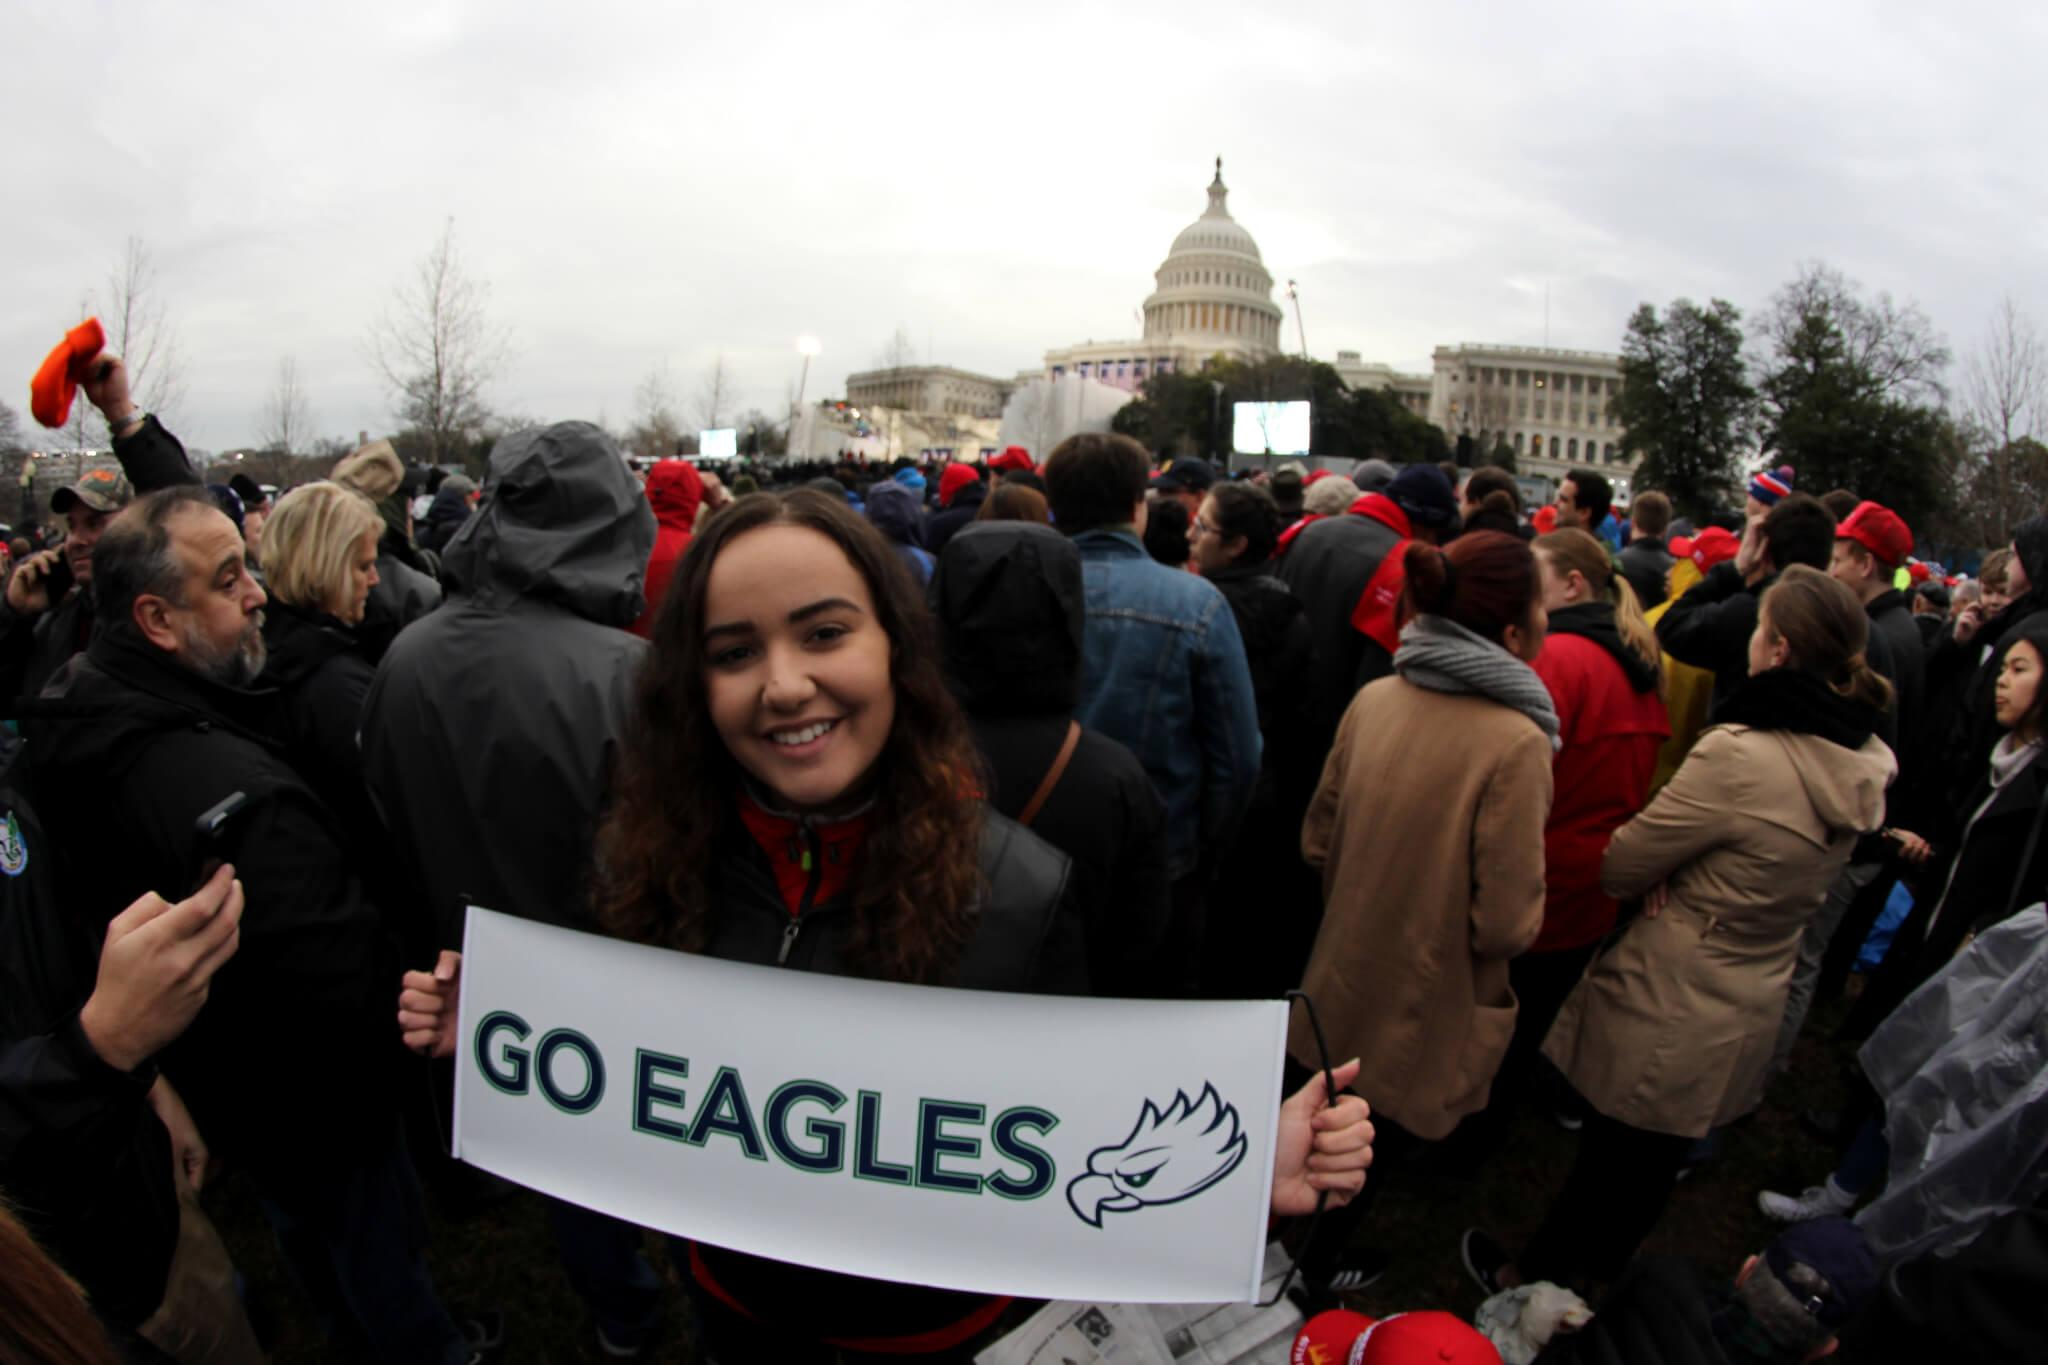 How I went from writing a satirical article on Trump's announcement to covering his inauguration on Capitol Hill